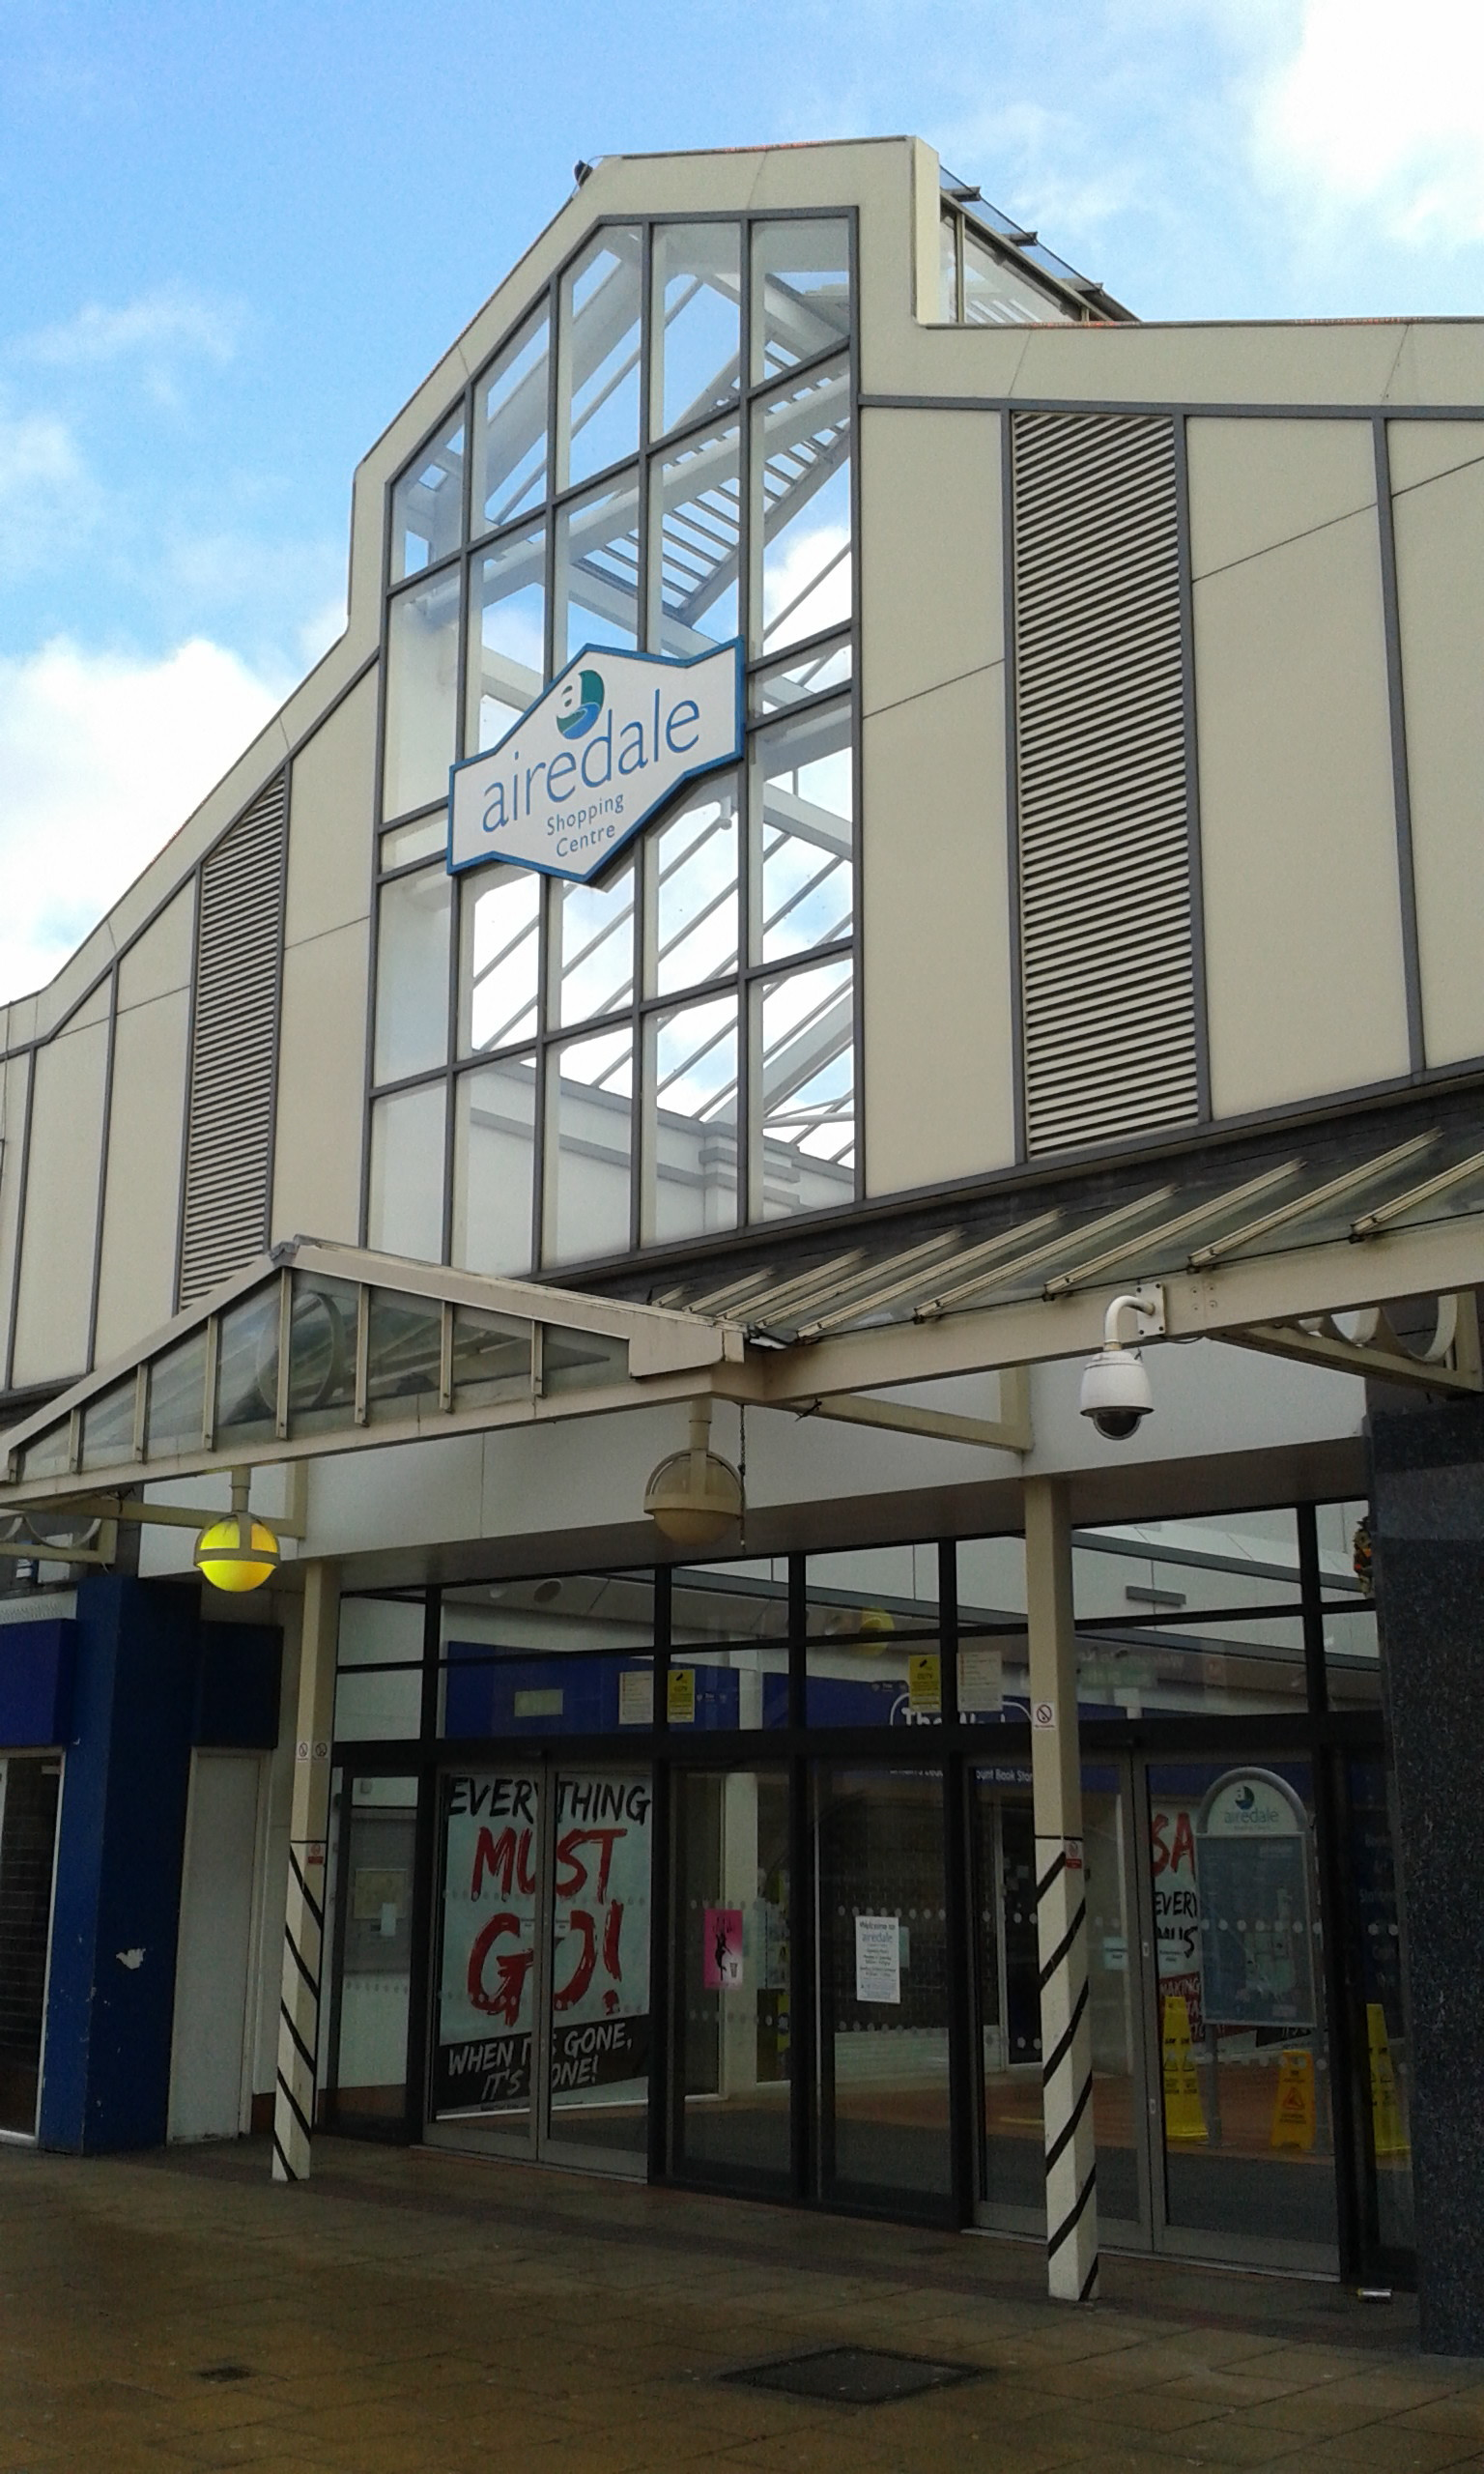 The Airedale Shopping Centre in Keighley